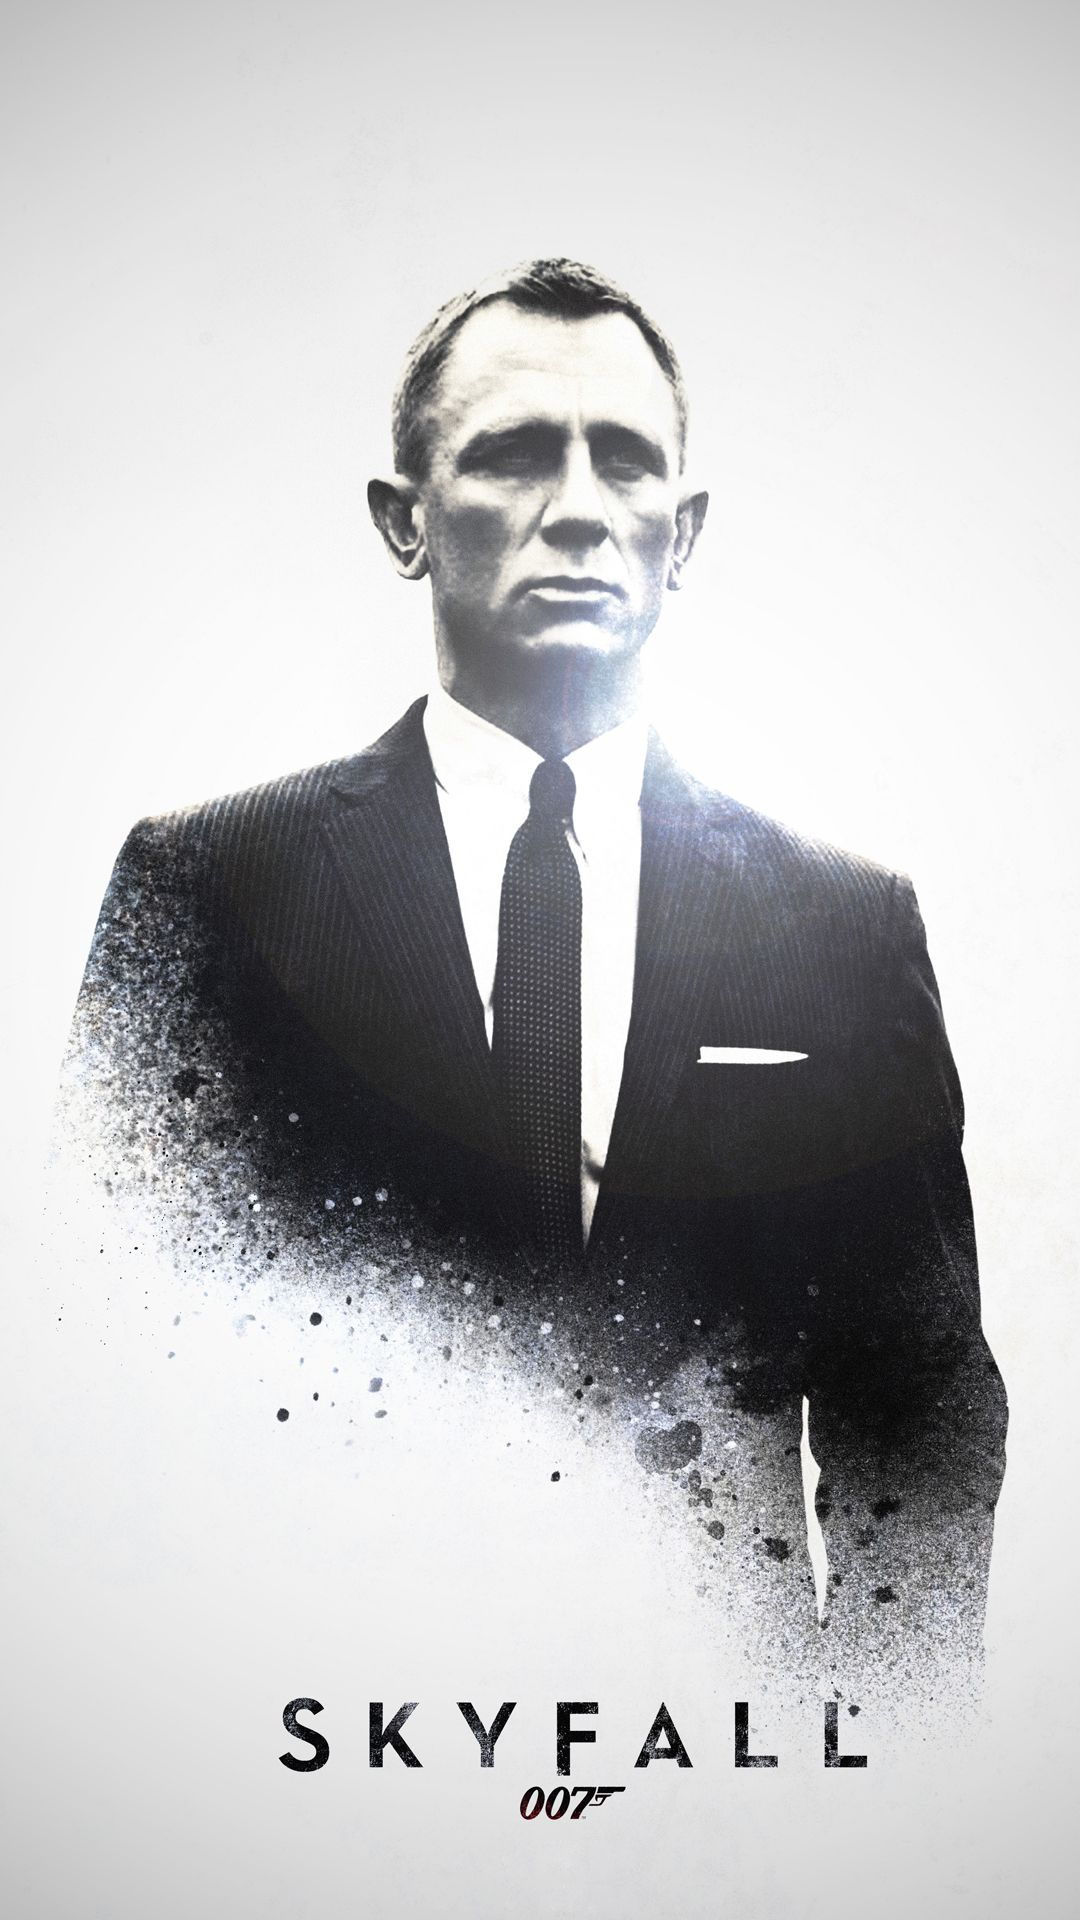 james bond skyfall 007 - best htc one wallpapers | bond | pinterest